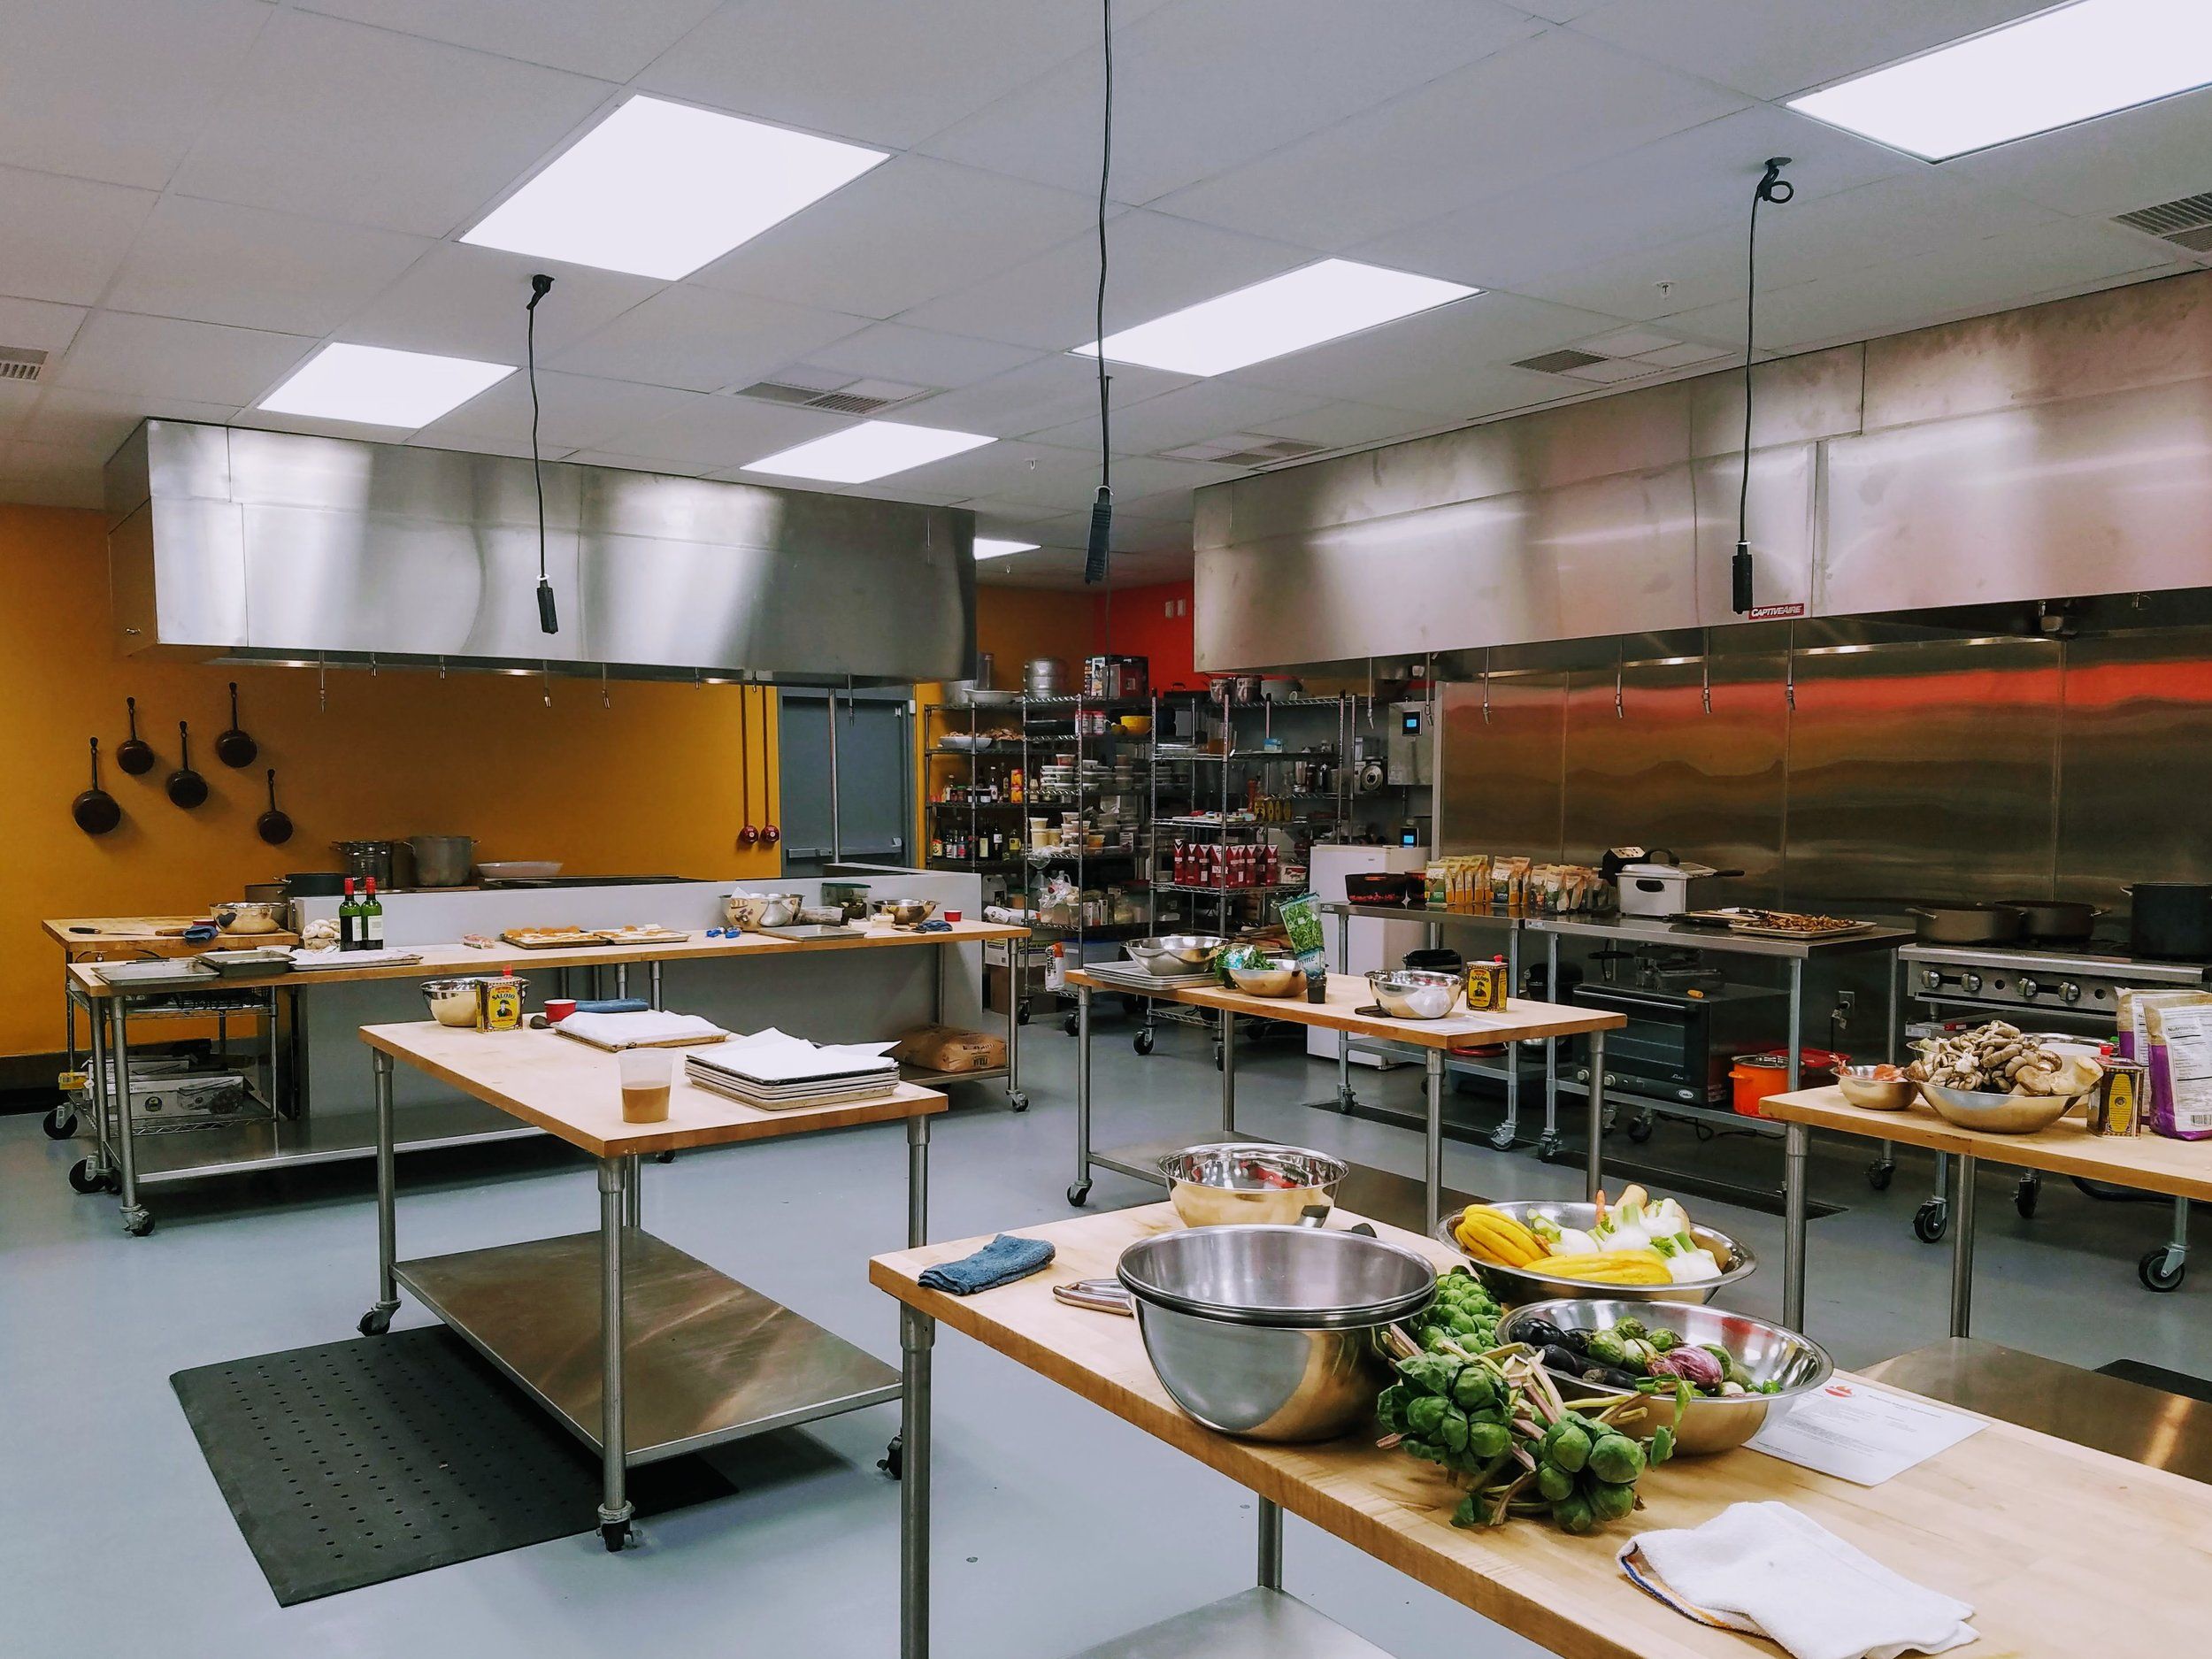 NEW : With expanded space and advanced equipment, our second kitchen can accommodate larger parties and specialty events.  Kitchen on Fire - Oakland  is located in the Golden Gate neighborhood of North Oakland.